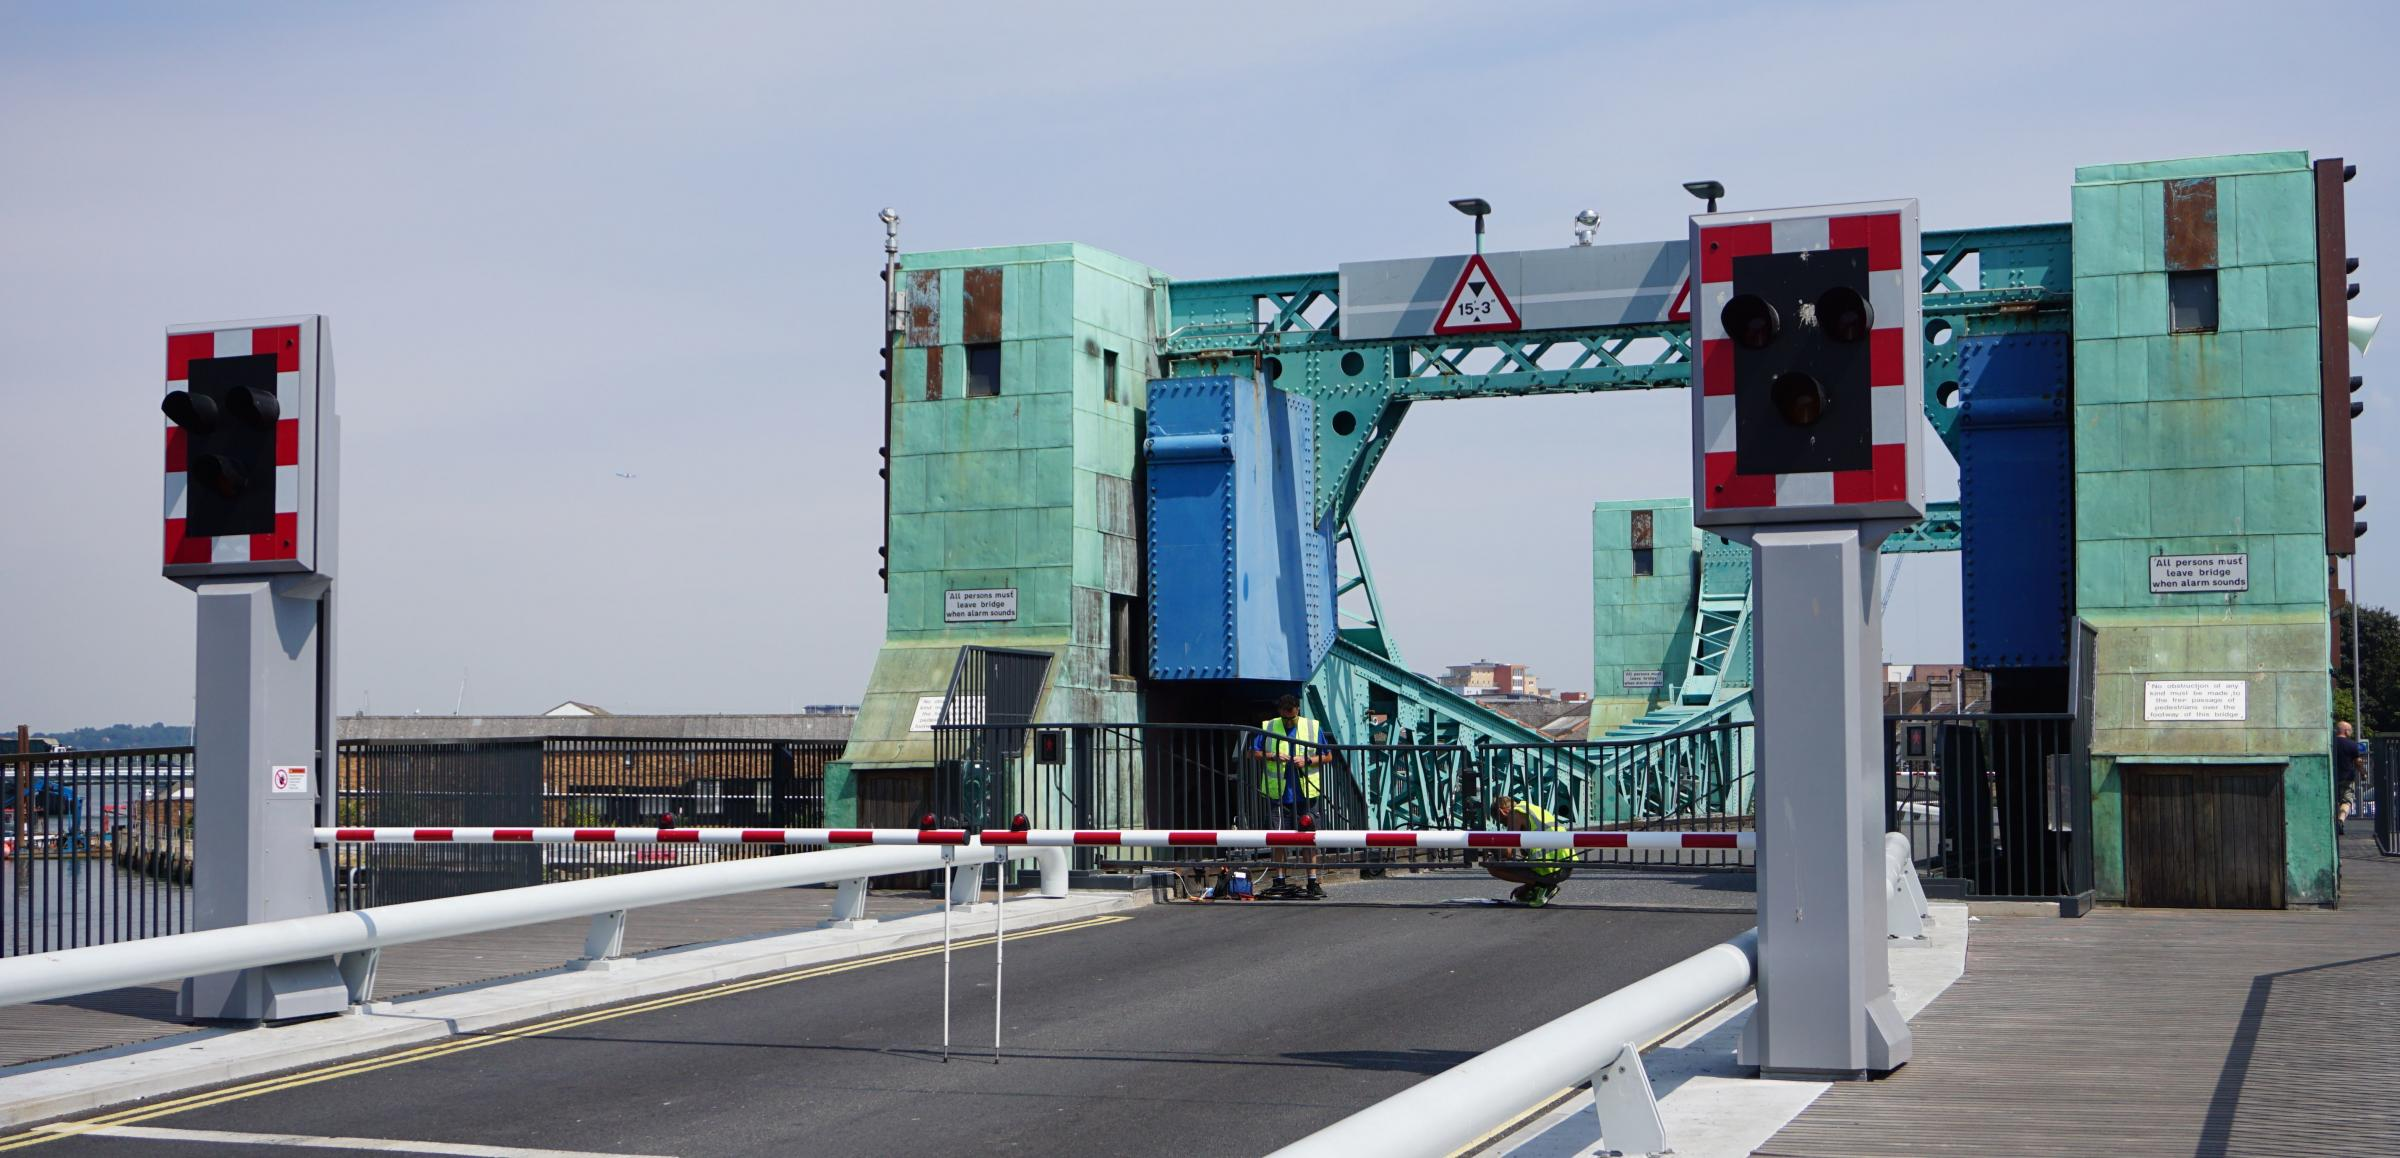 Work on Poole Bridge is still unfinished, says Colin Moyes